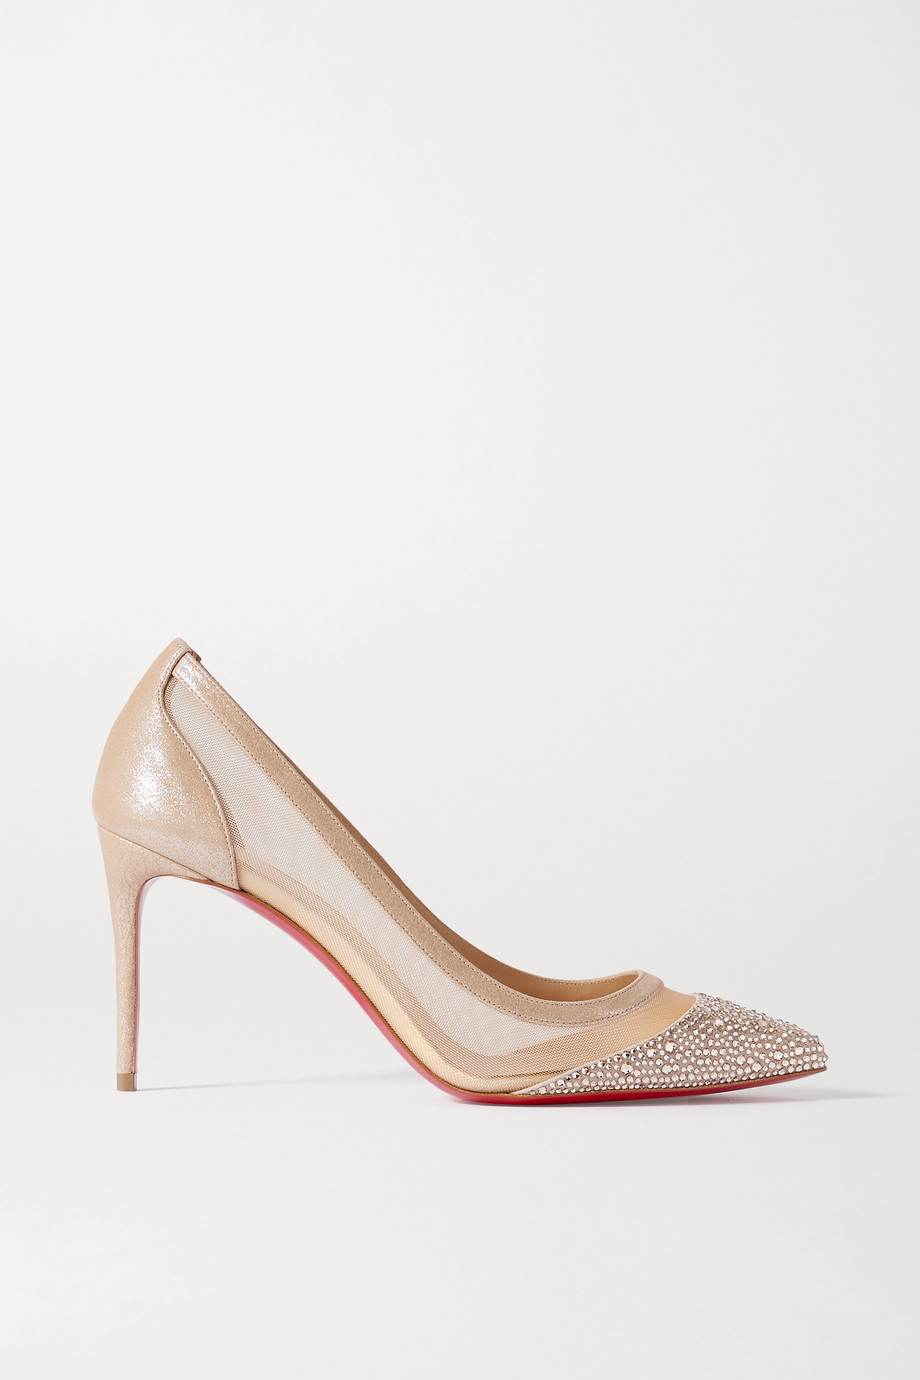 Christian Louboutin Galativi Strass 85 crystal-embellished leather-trimmed mesh pumps